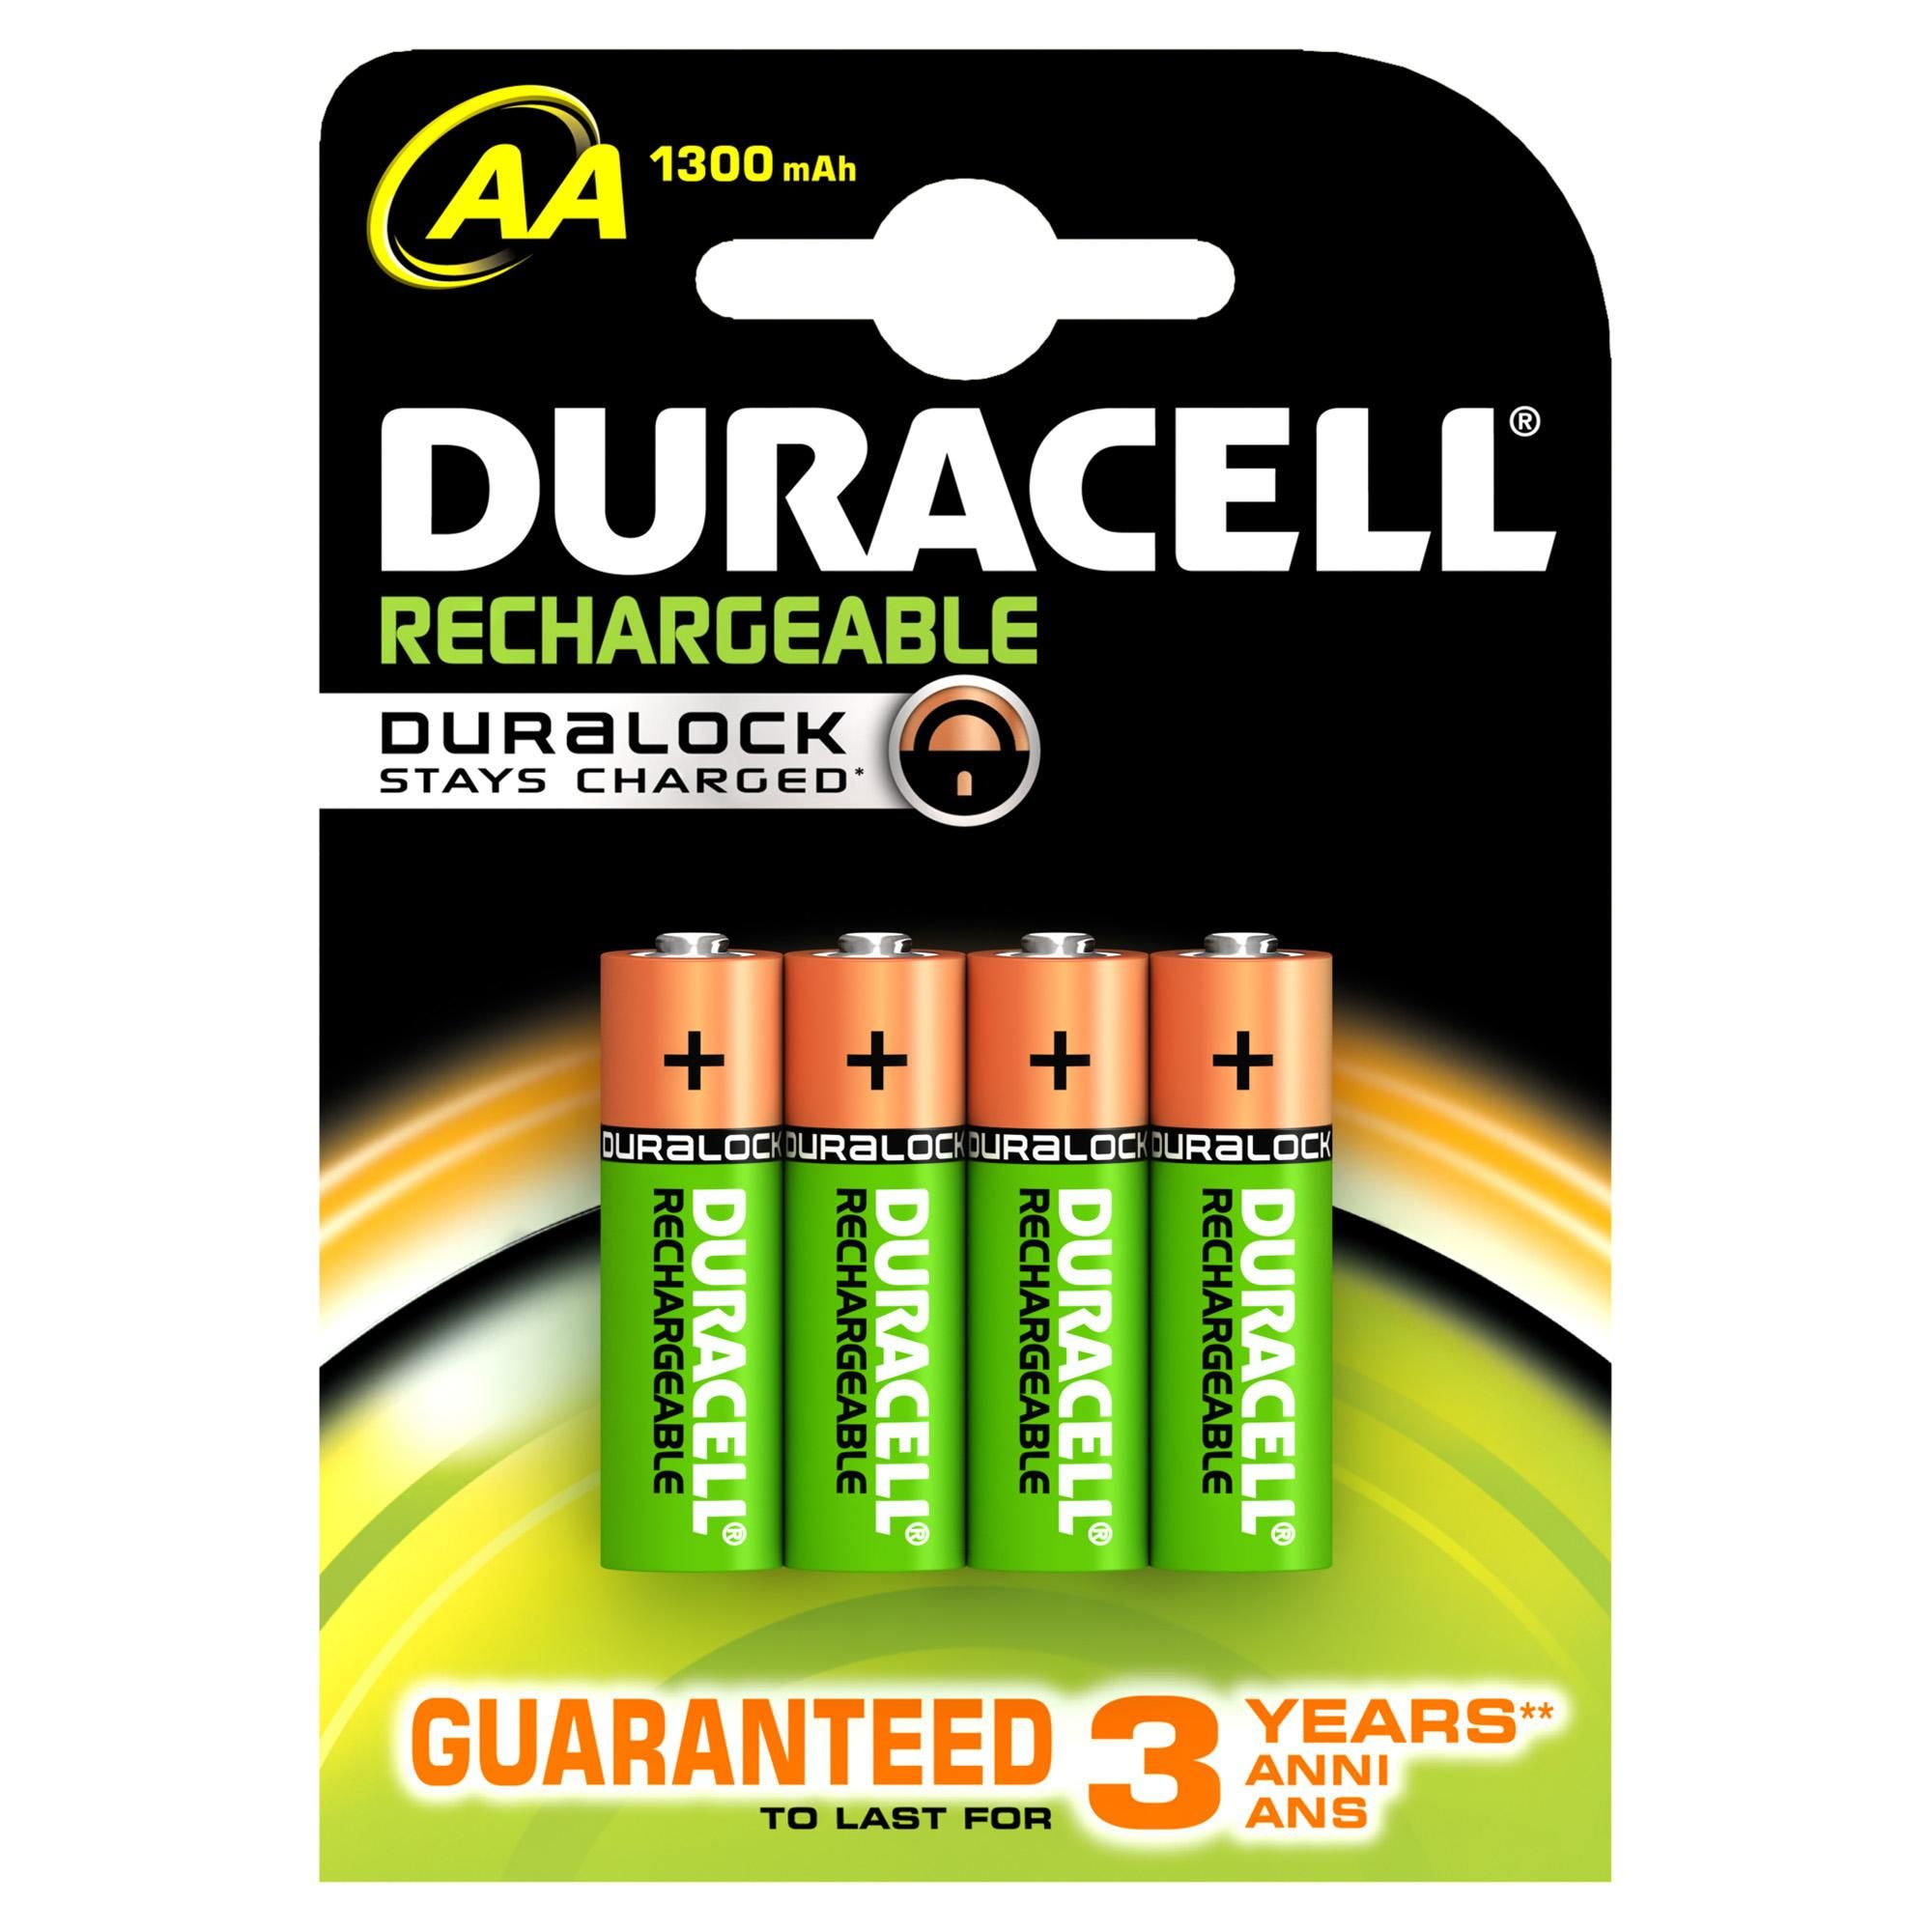 Duracell Pack Of 4 Aa Rechargeable Batteries Duracell Rechargeable Batteries Duracell Batteries